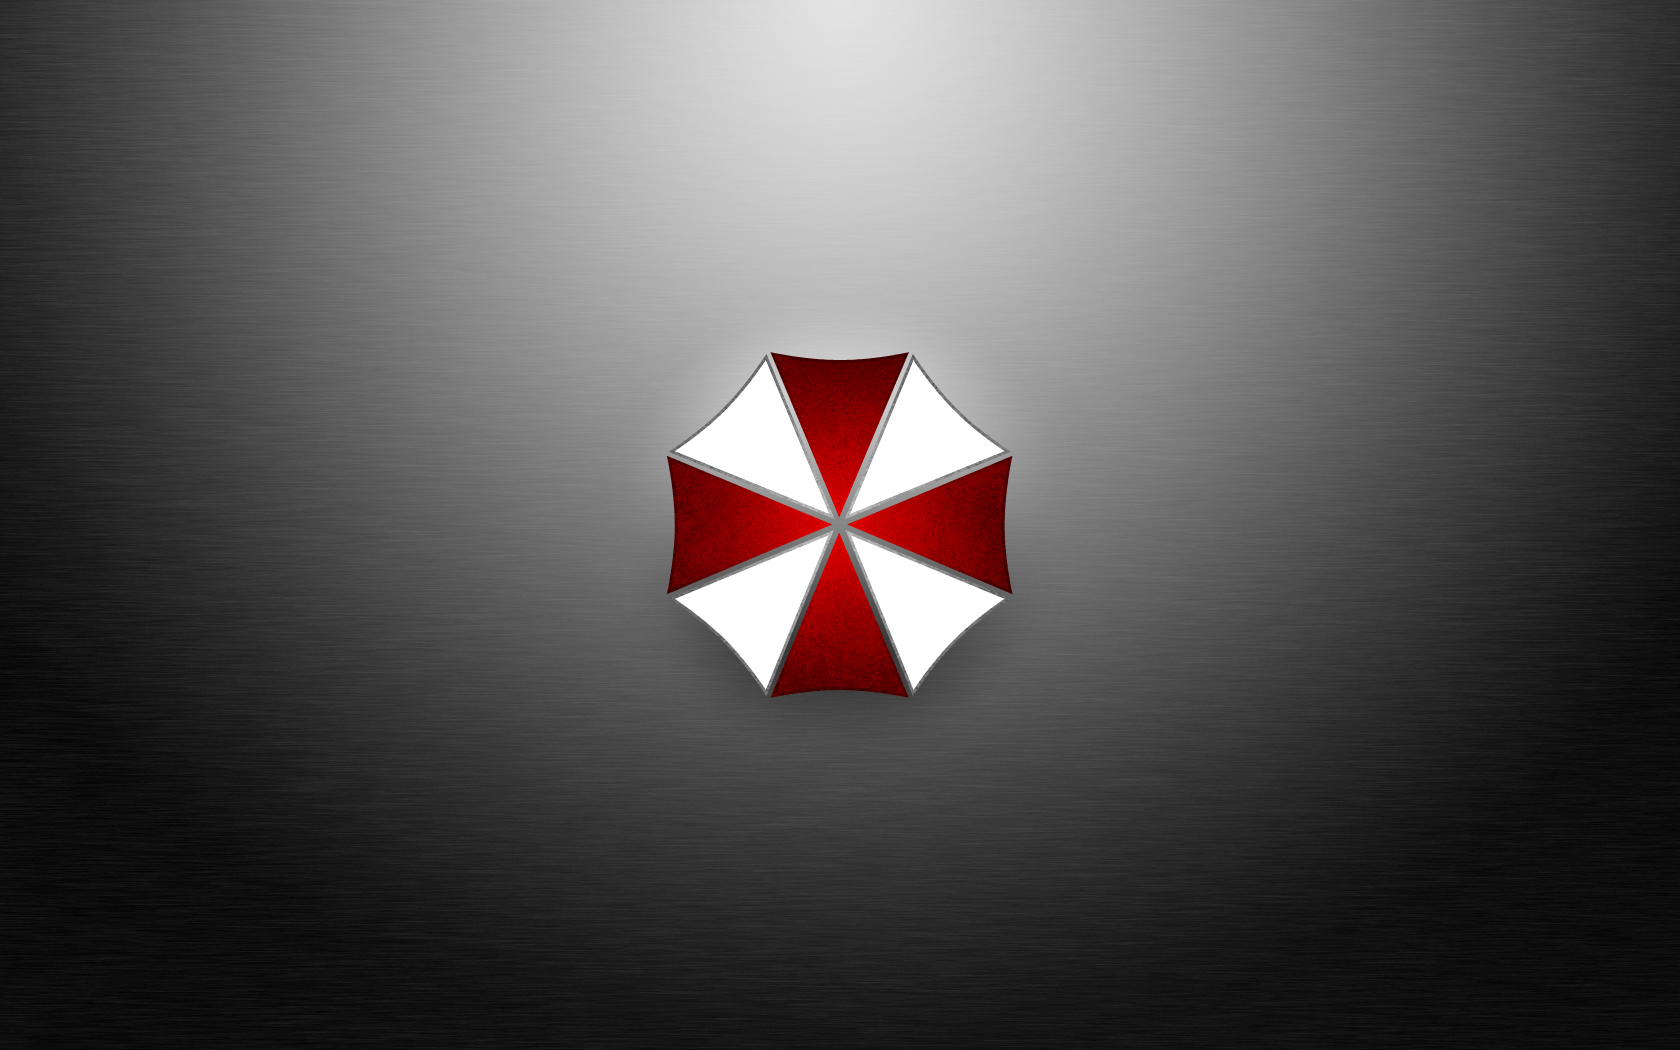 Umbrella Corp. HD Wallpaper